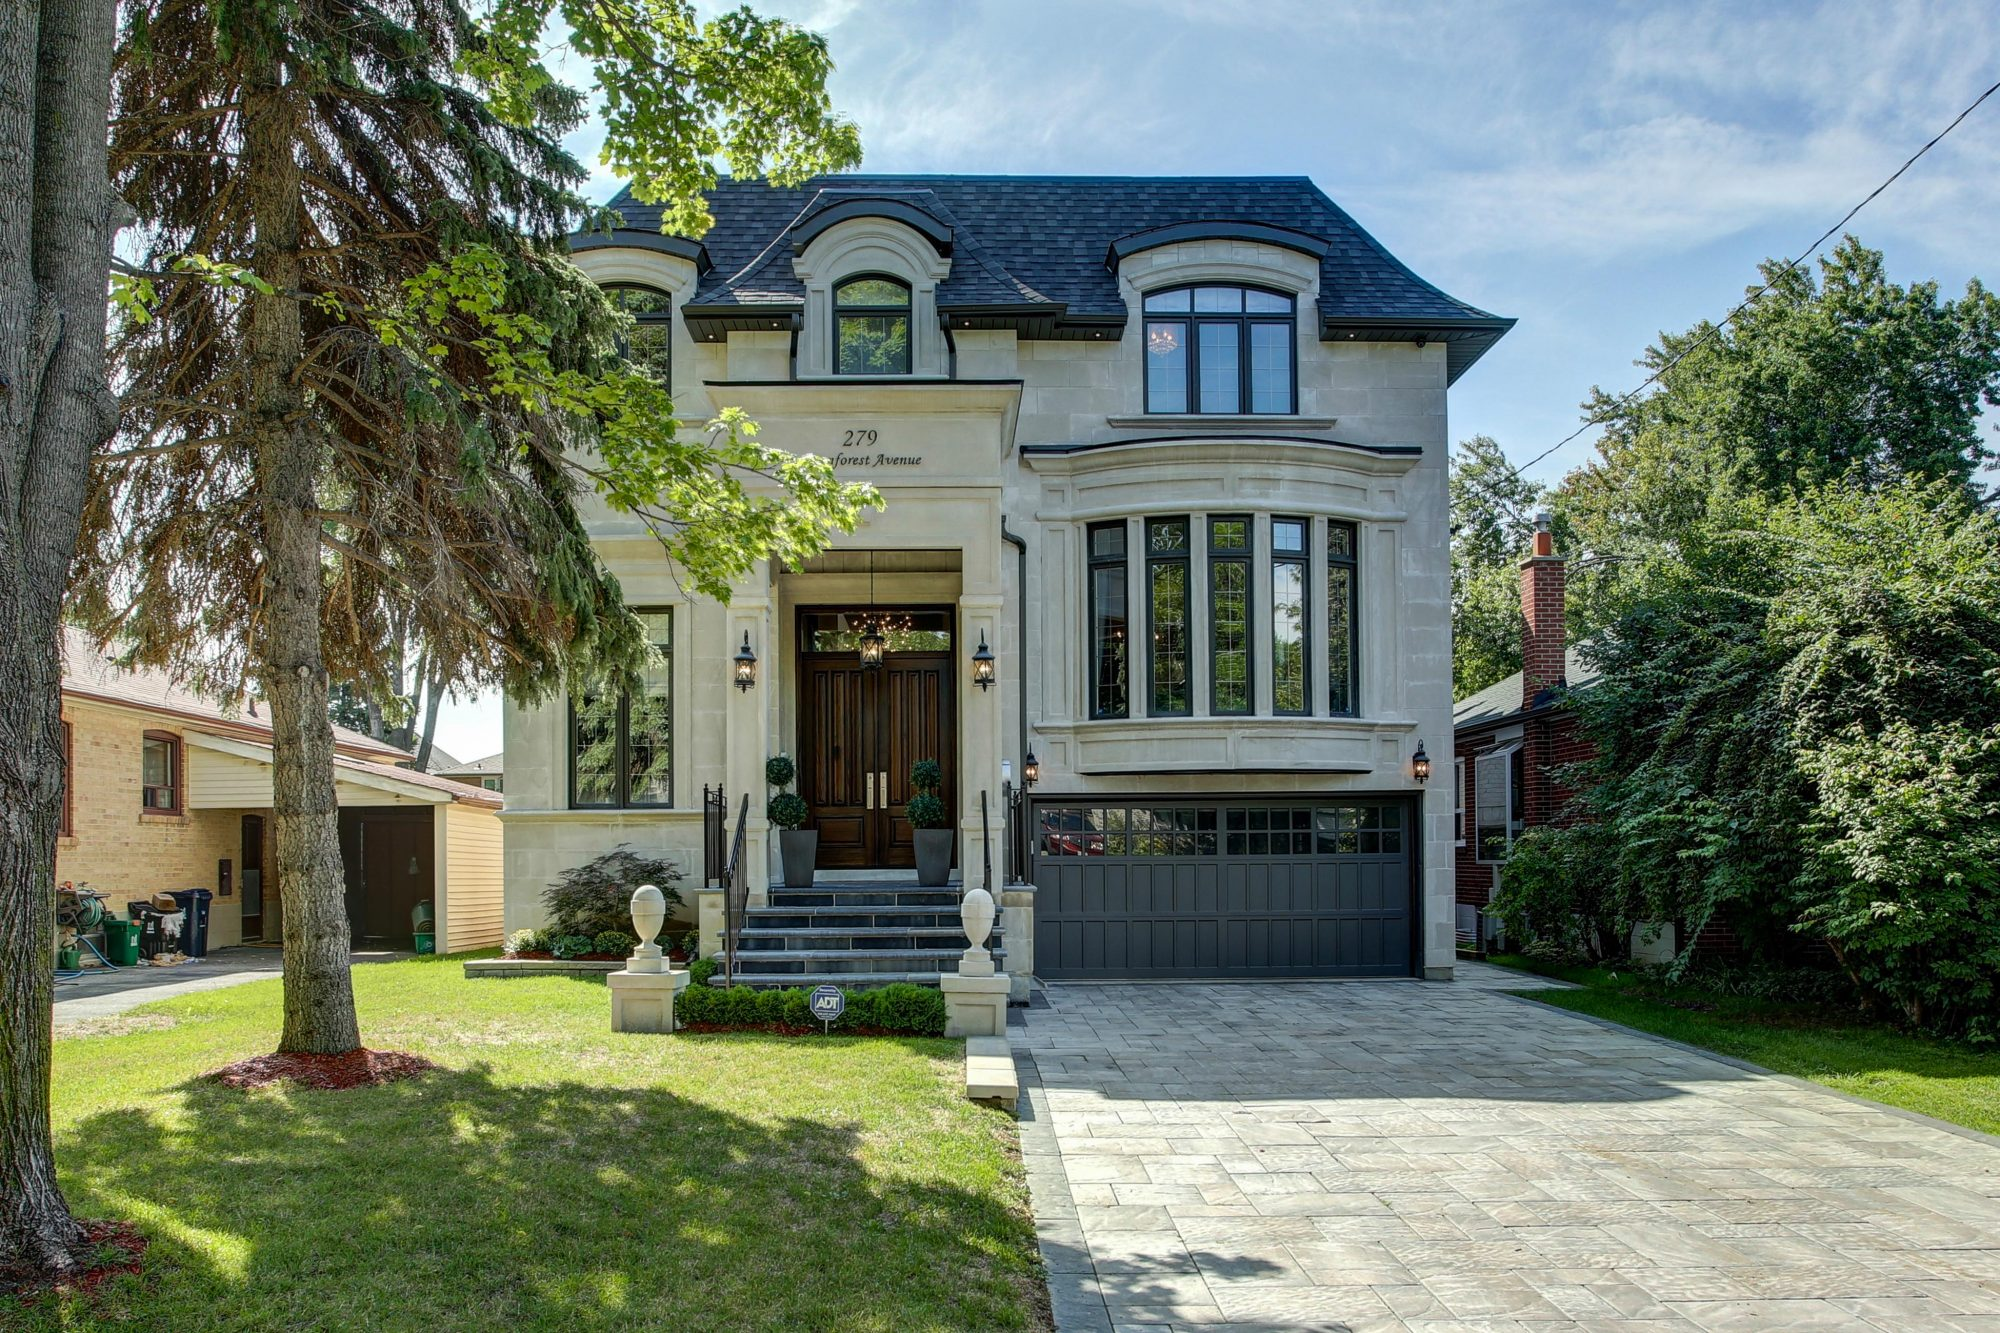 The house that sold at 279 Dunforest Avenue